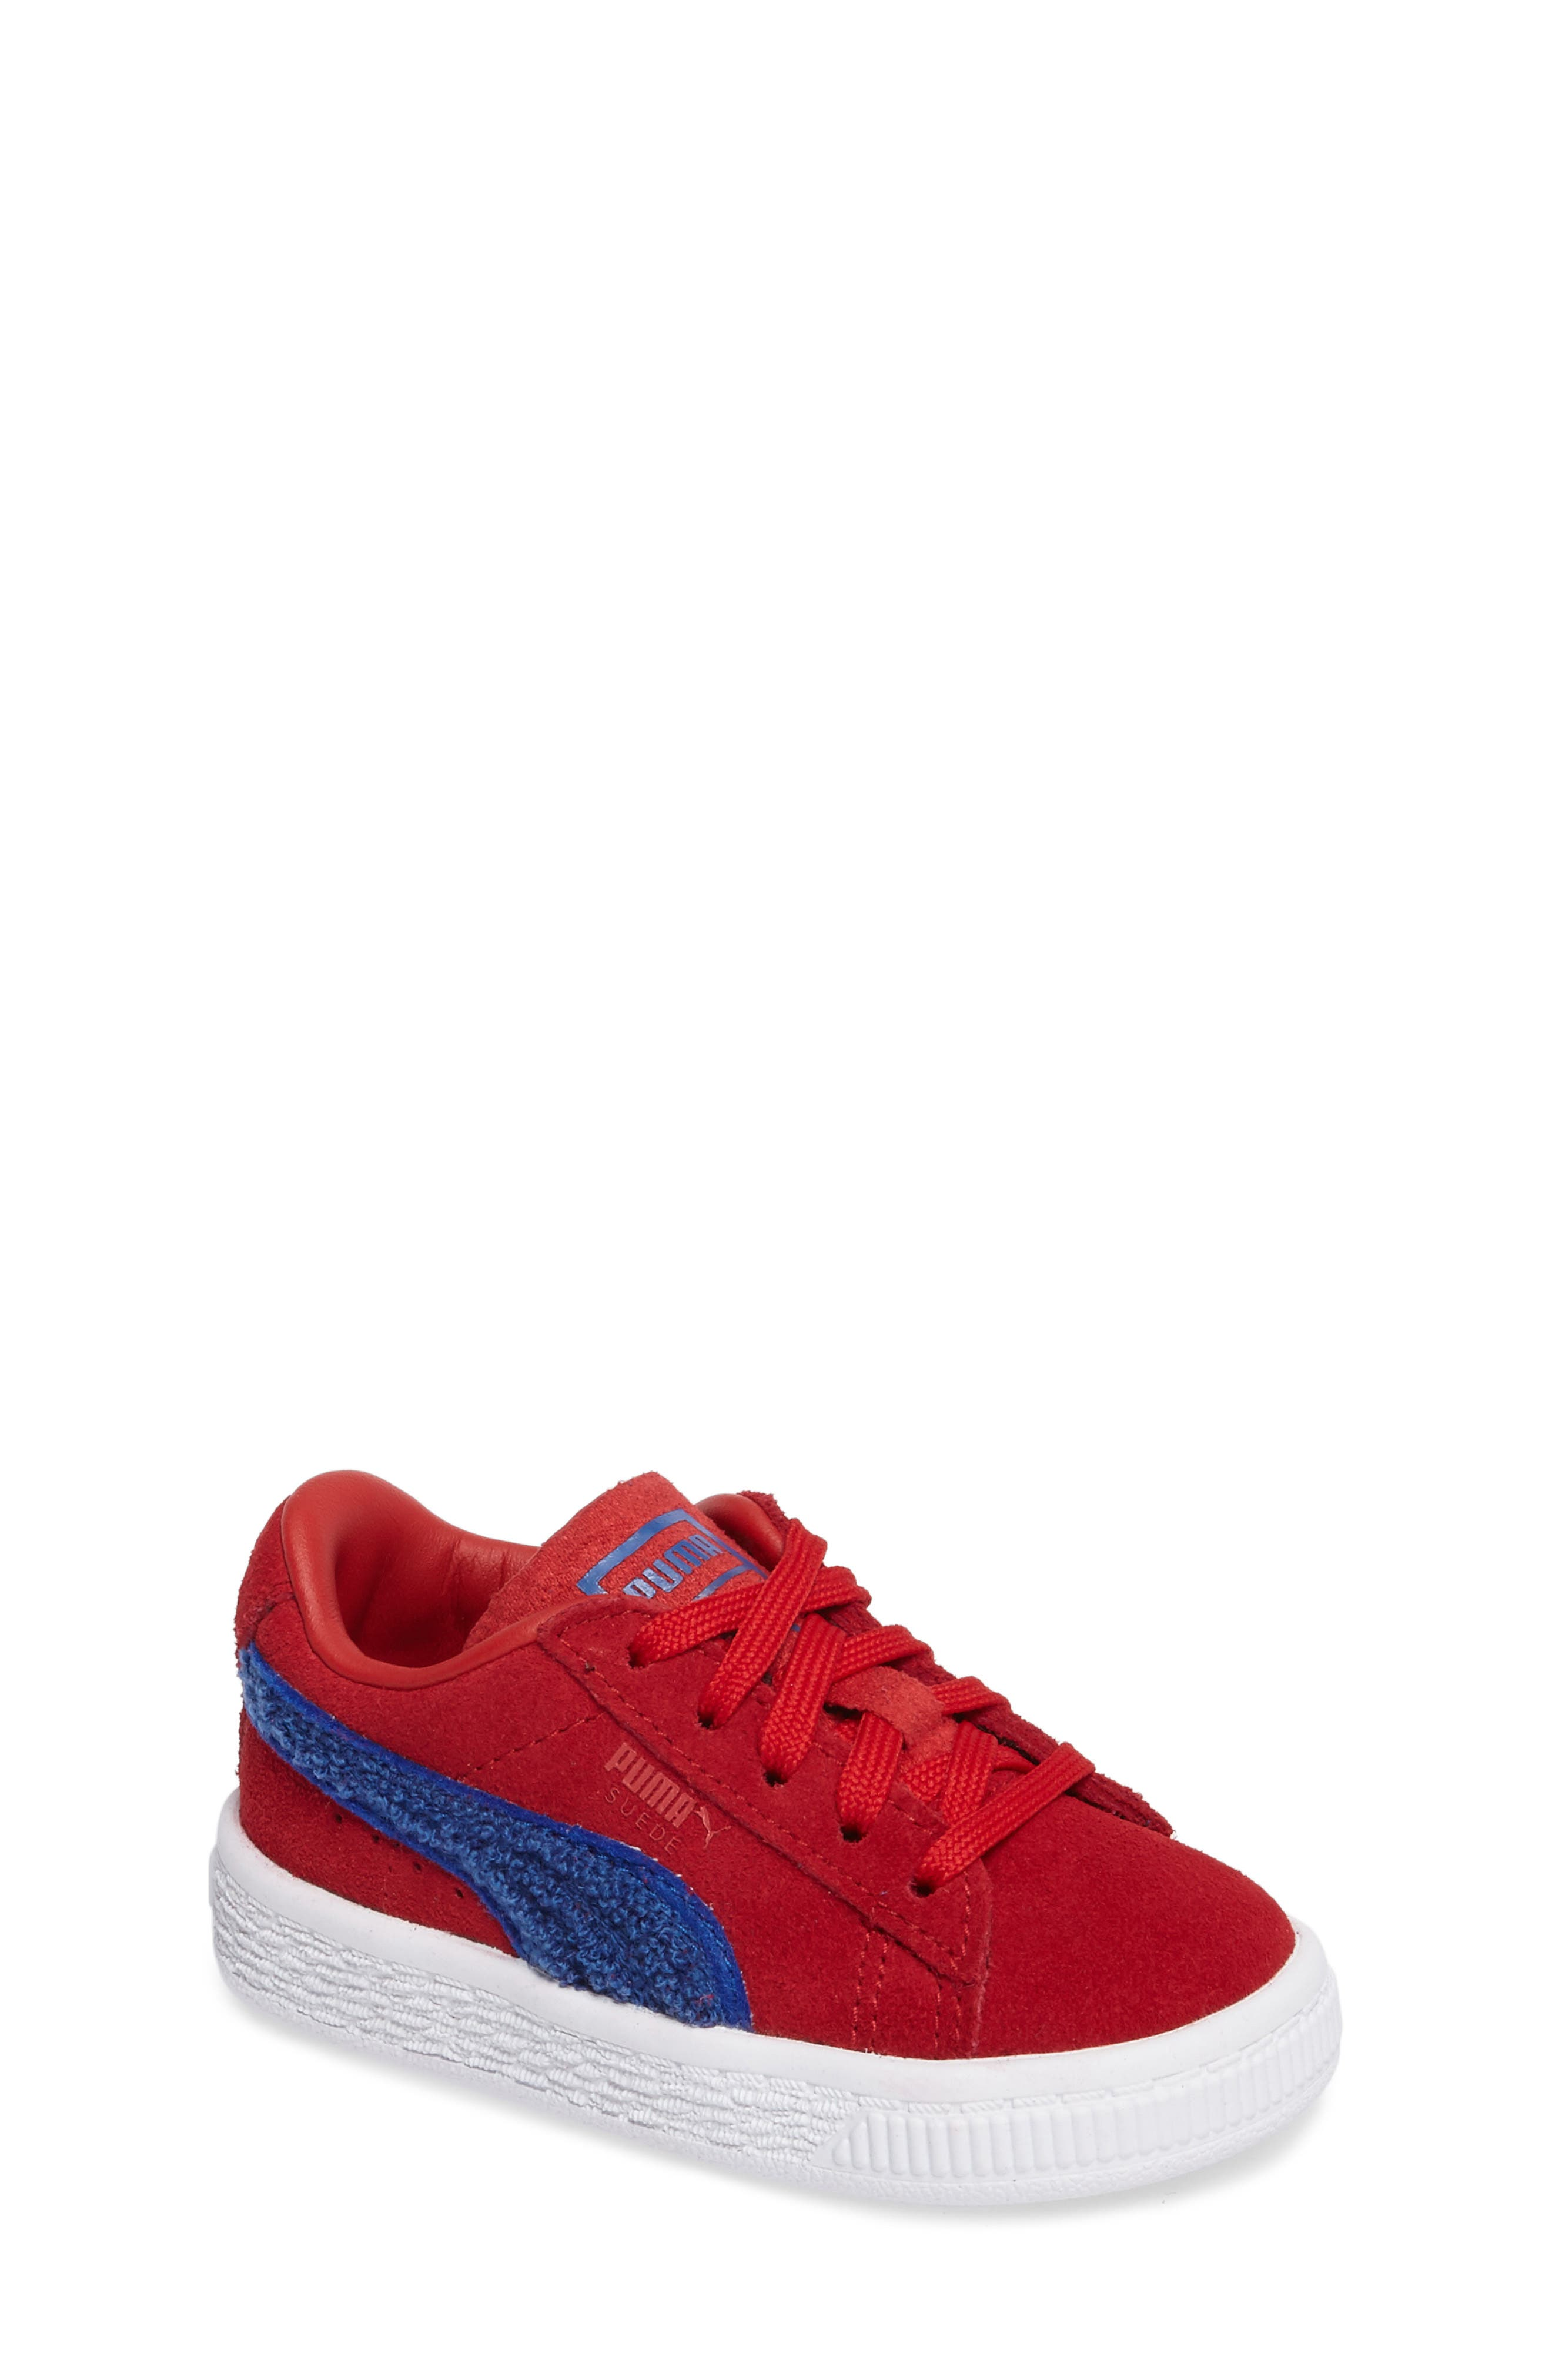 Alternate Image 1 Selected - PUMA Classic Terry Sneaker (Baby, Walker & Toddler)